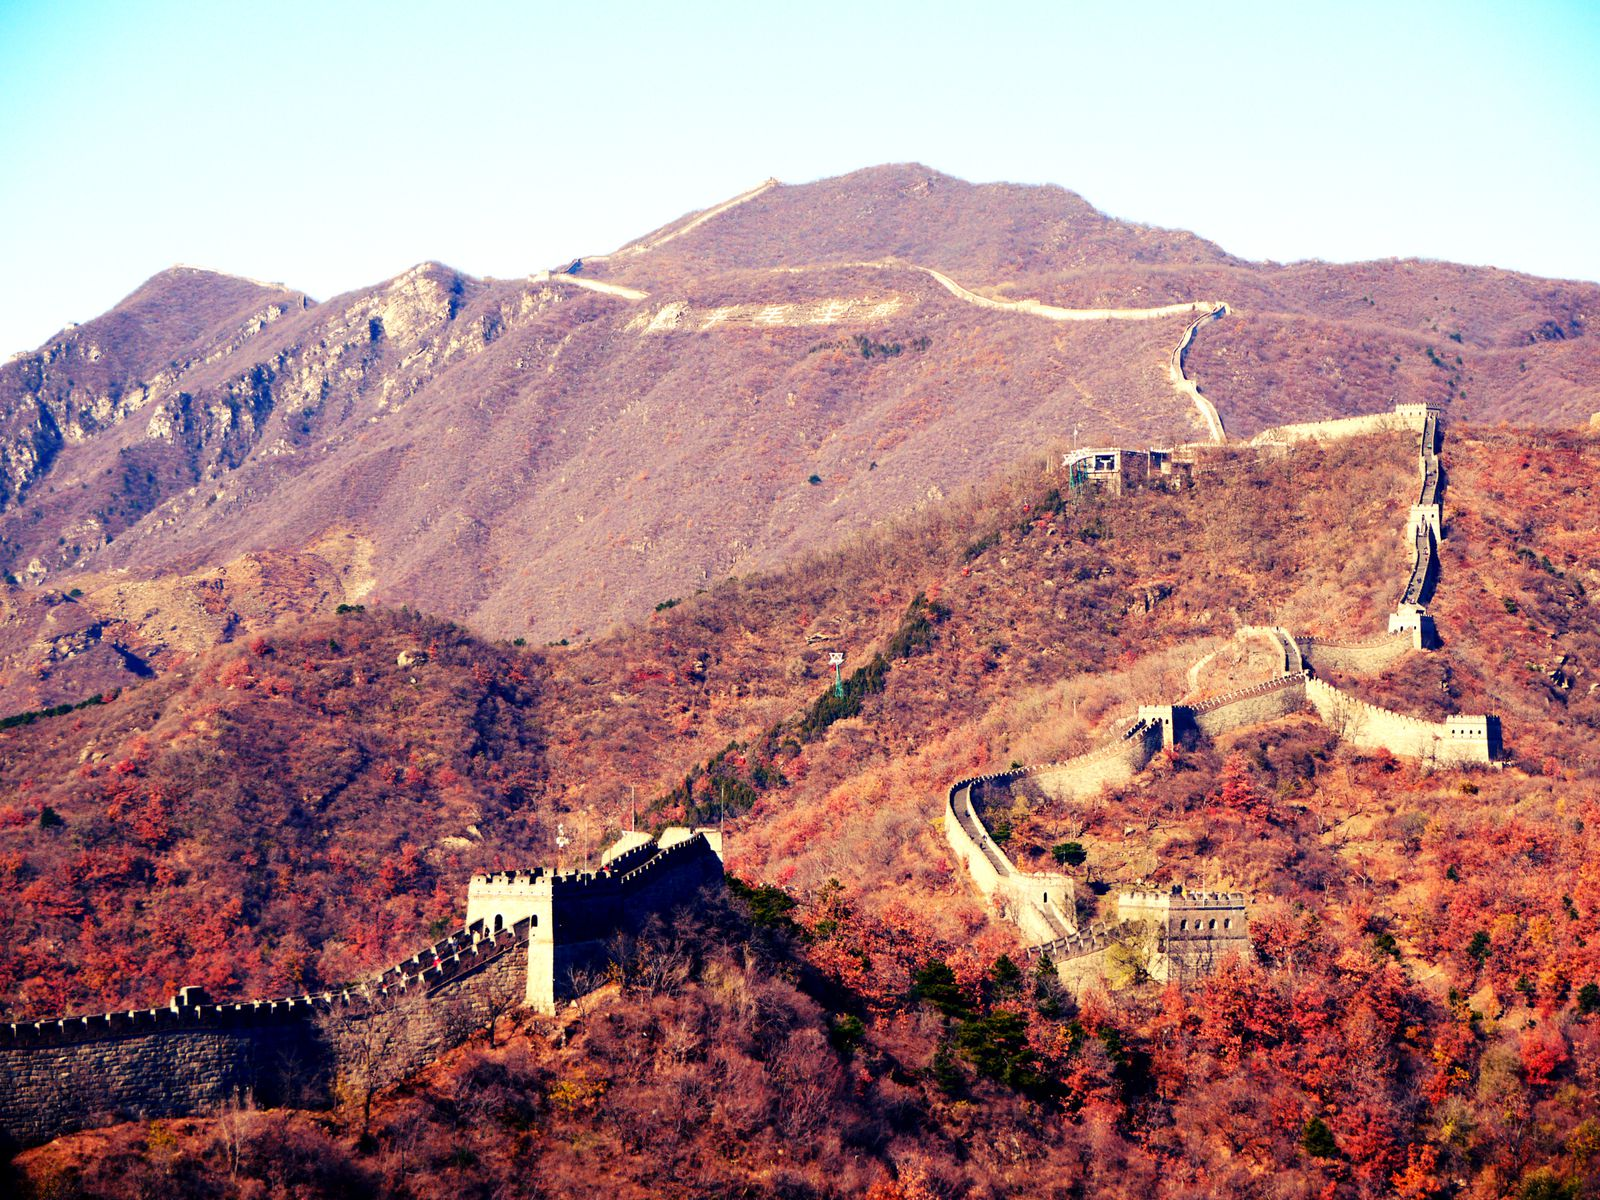 The Great Wall [Mutianyu's section] - China